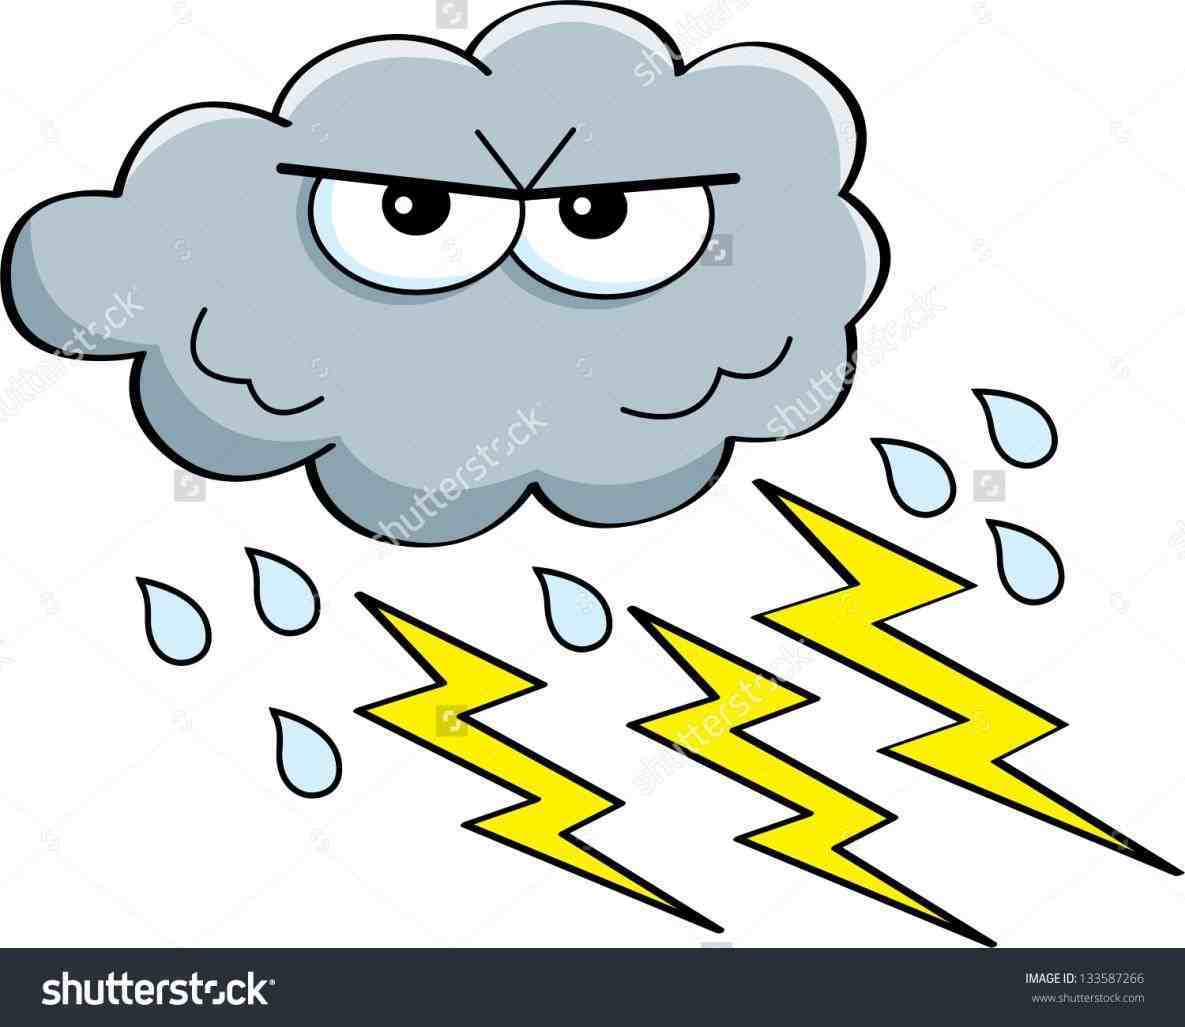 And in color lightening lighting storm clipart clipart thunderstorm cloud  pencil and in color lightning storm